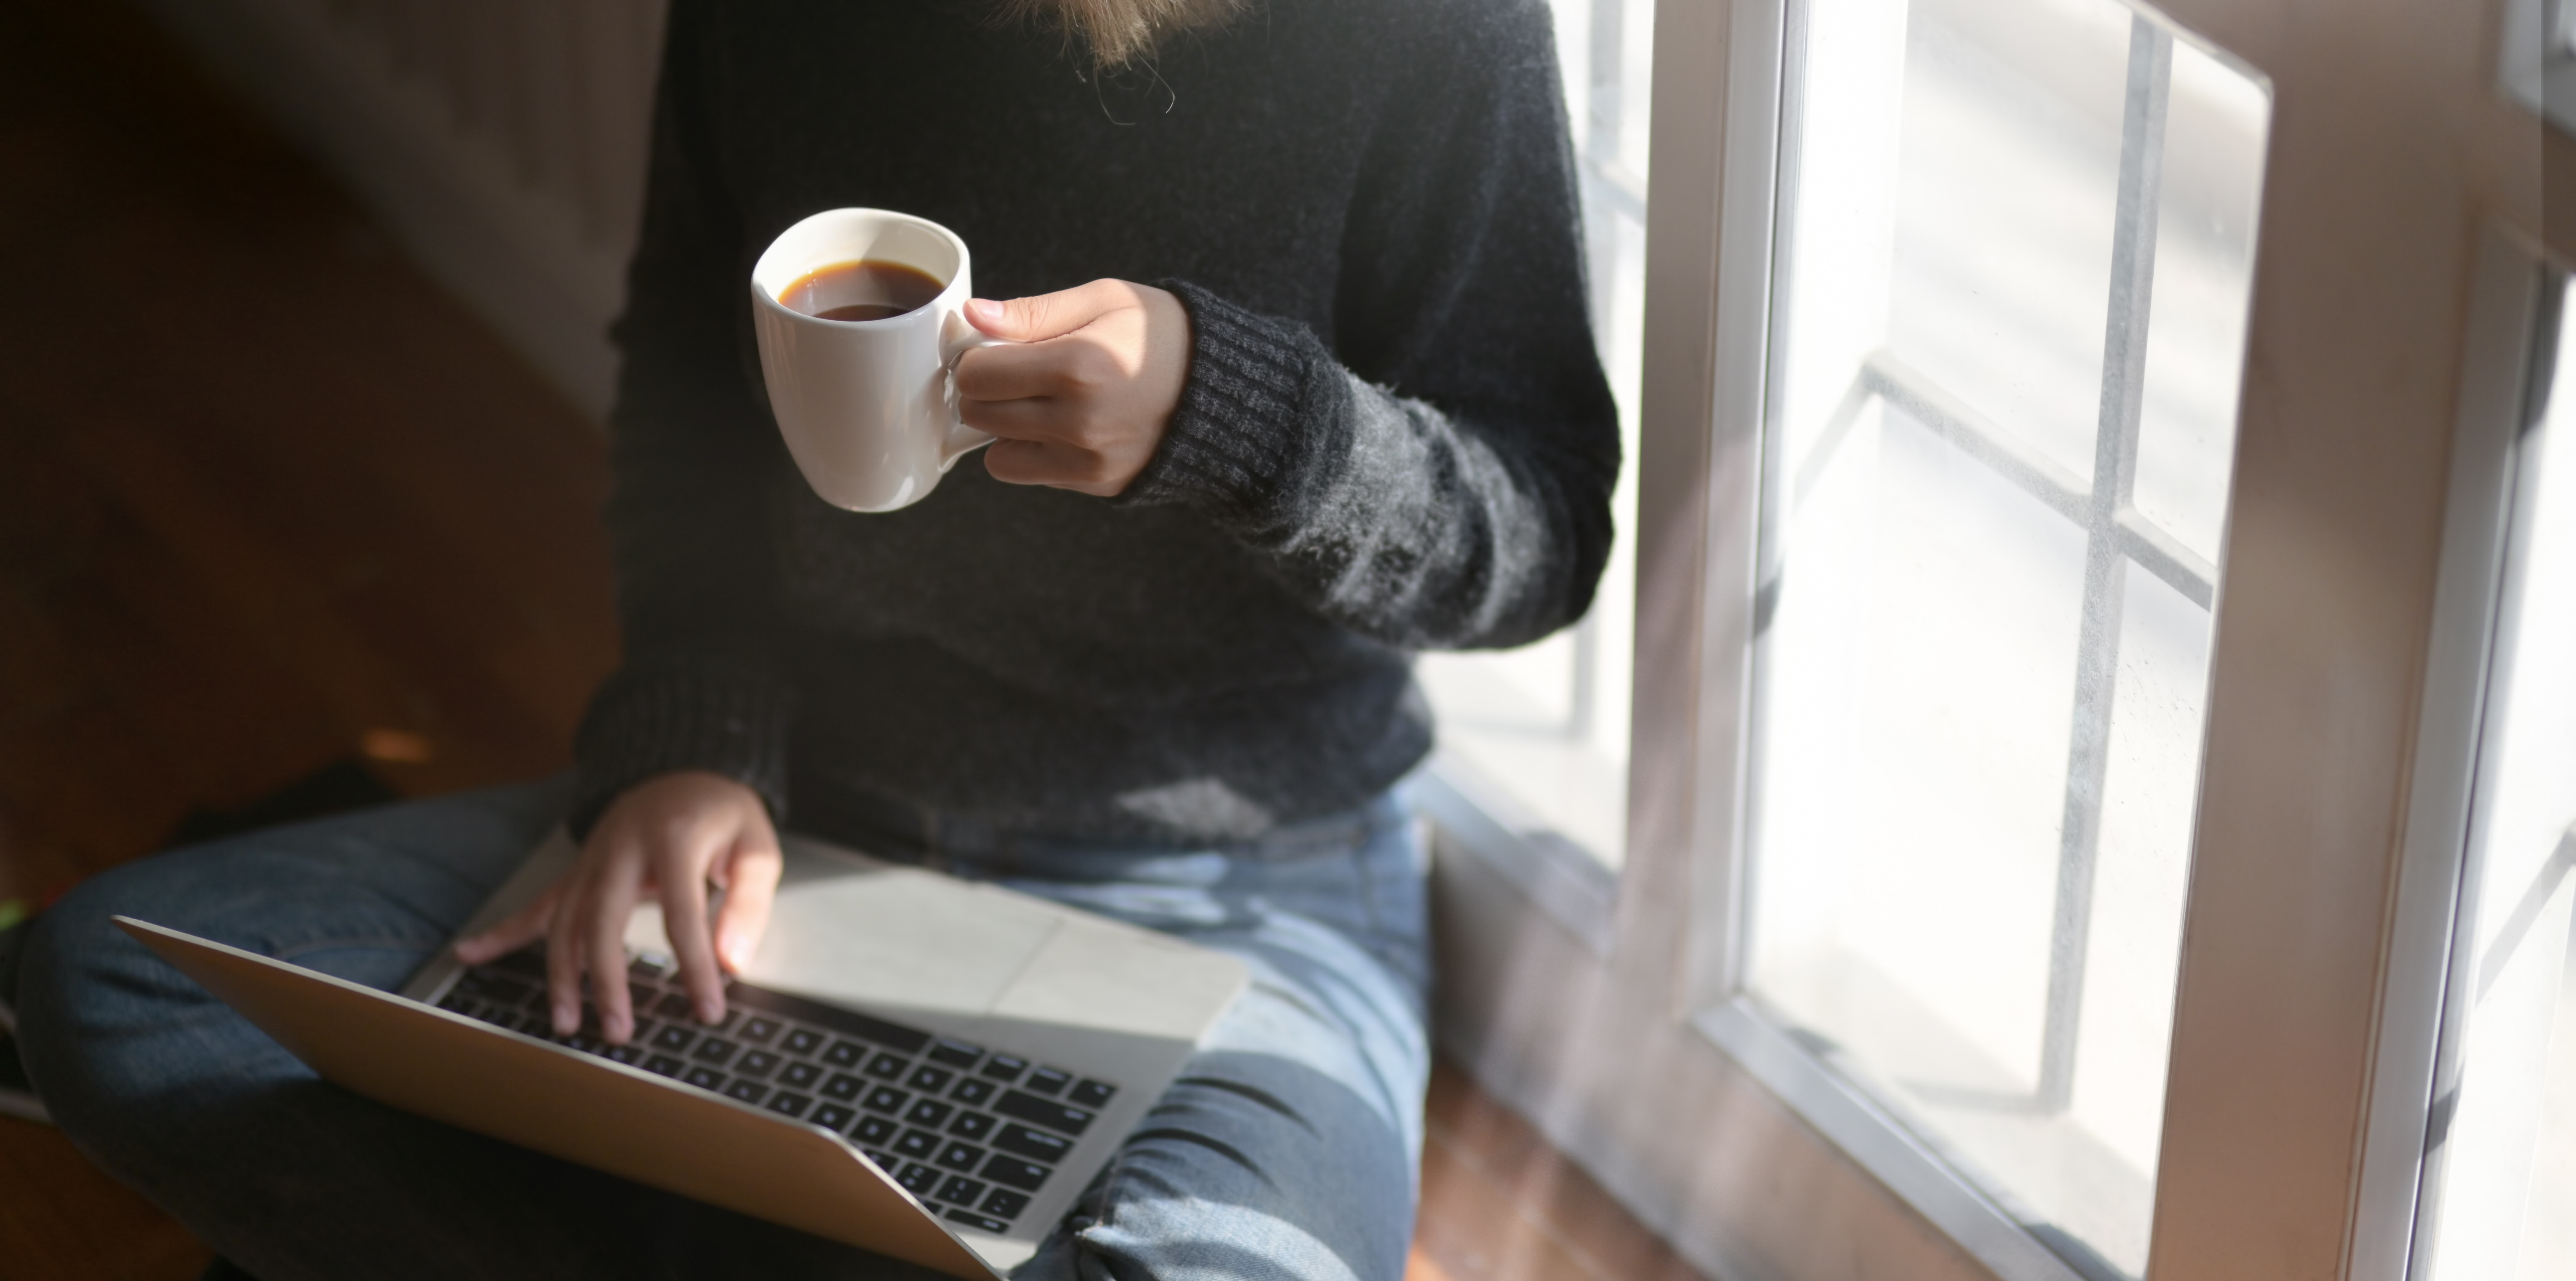 a person sitting on the floor with a laptop and a cup of coffee